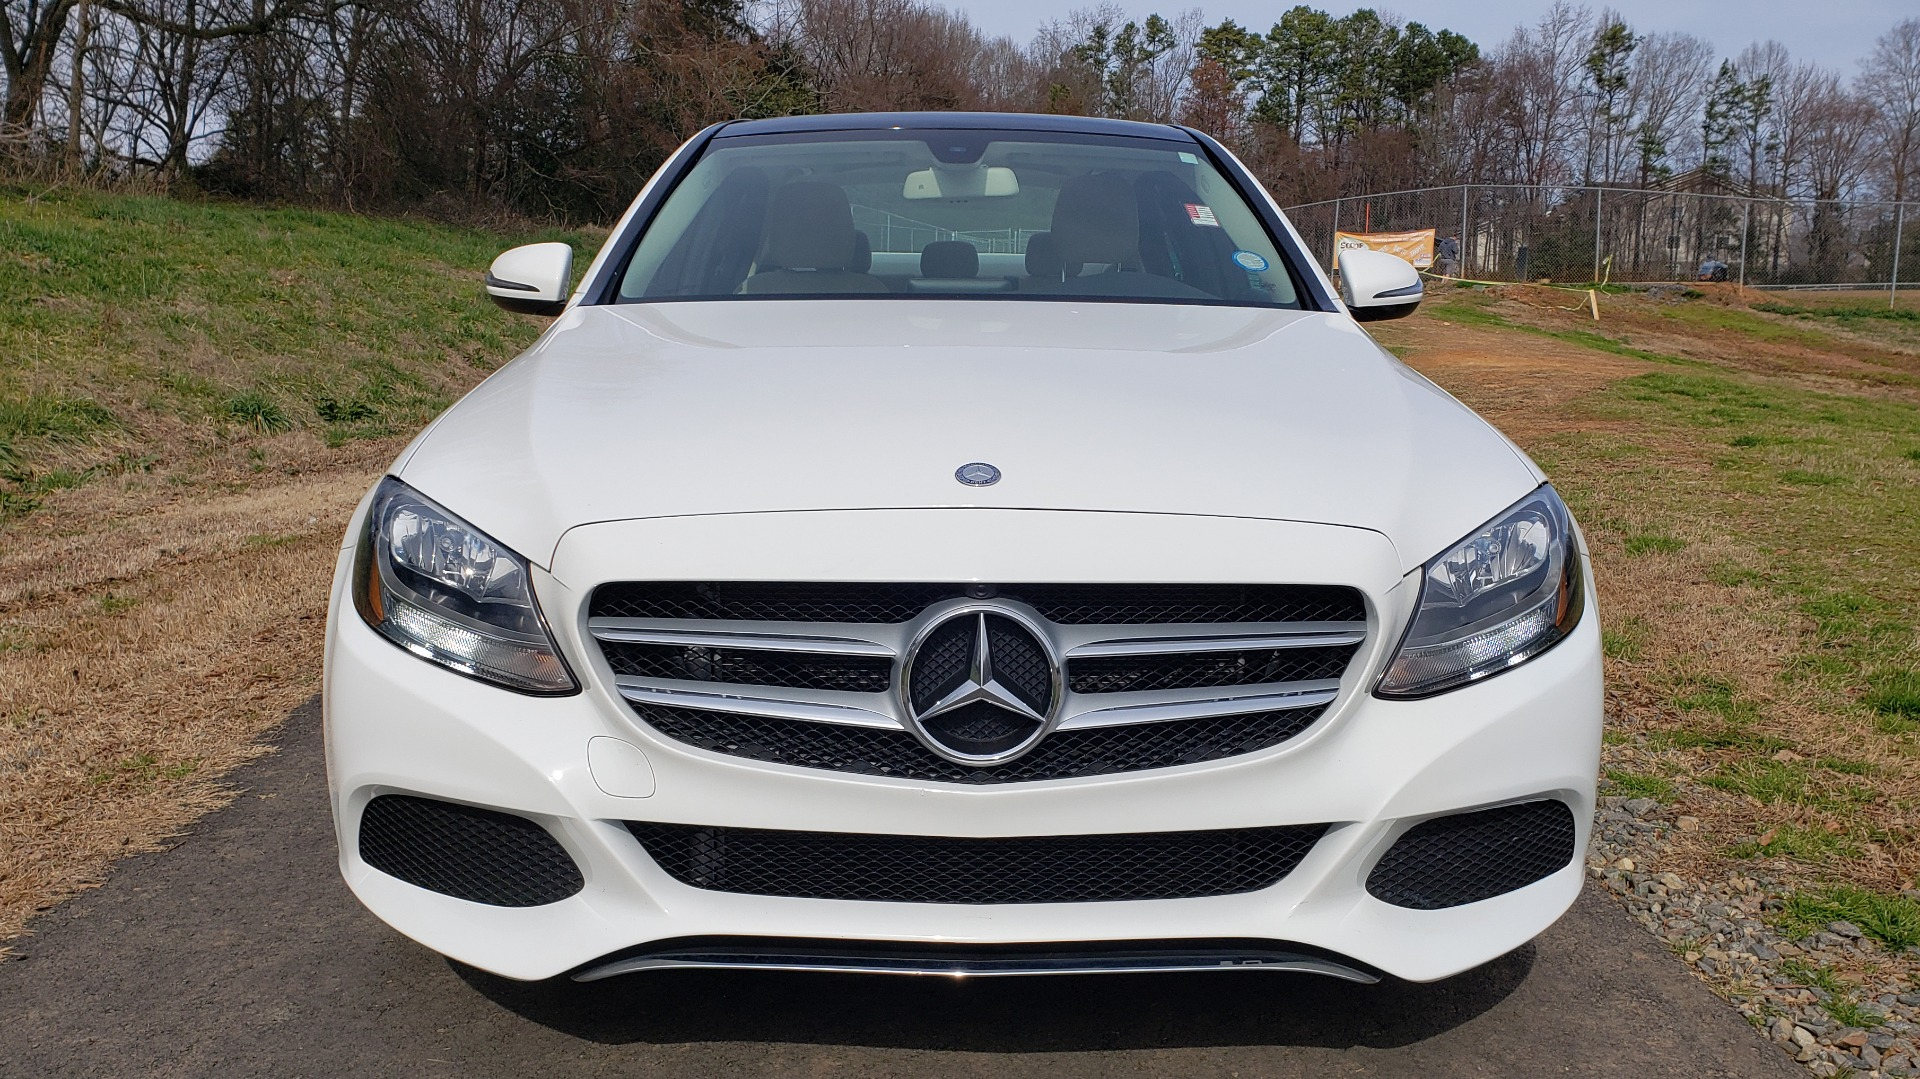 Used 2017 Mercedes-Benz C-CLASS C 300 / PREM PKG / PANO-ROOF / REARVIEW / HTD STS for sale Sold at Formula Imports in Charlotte NC 28227 9